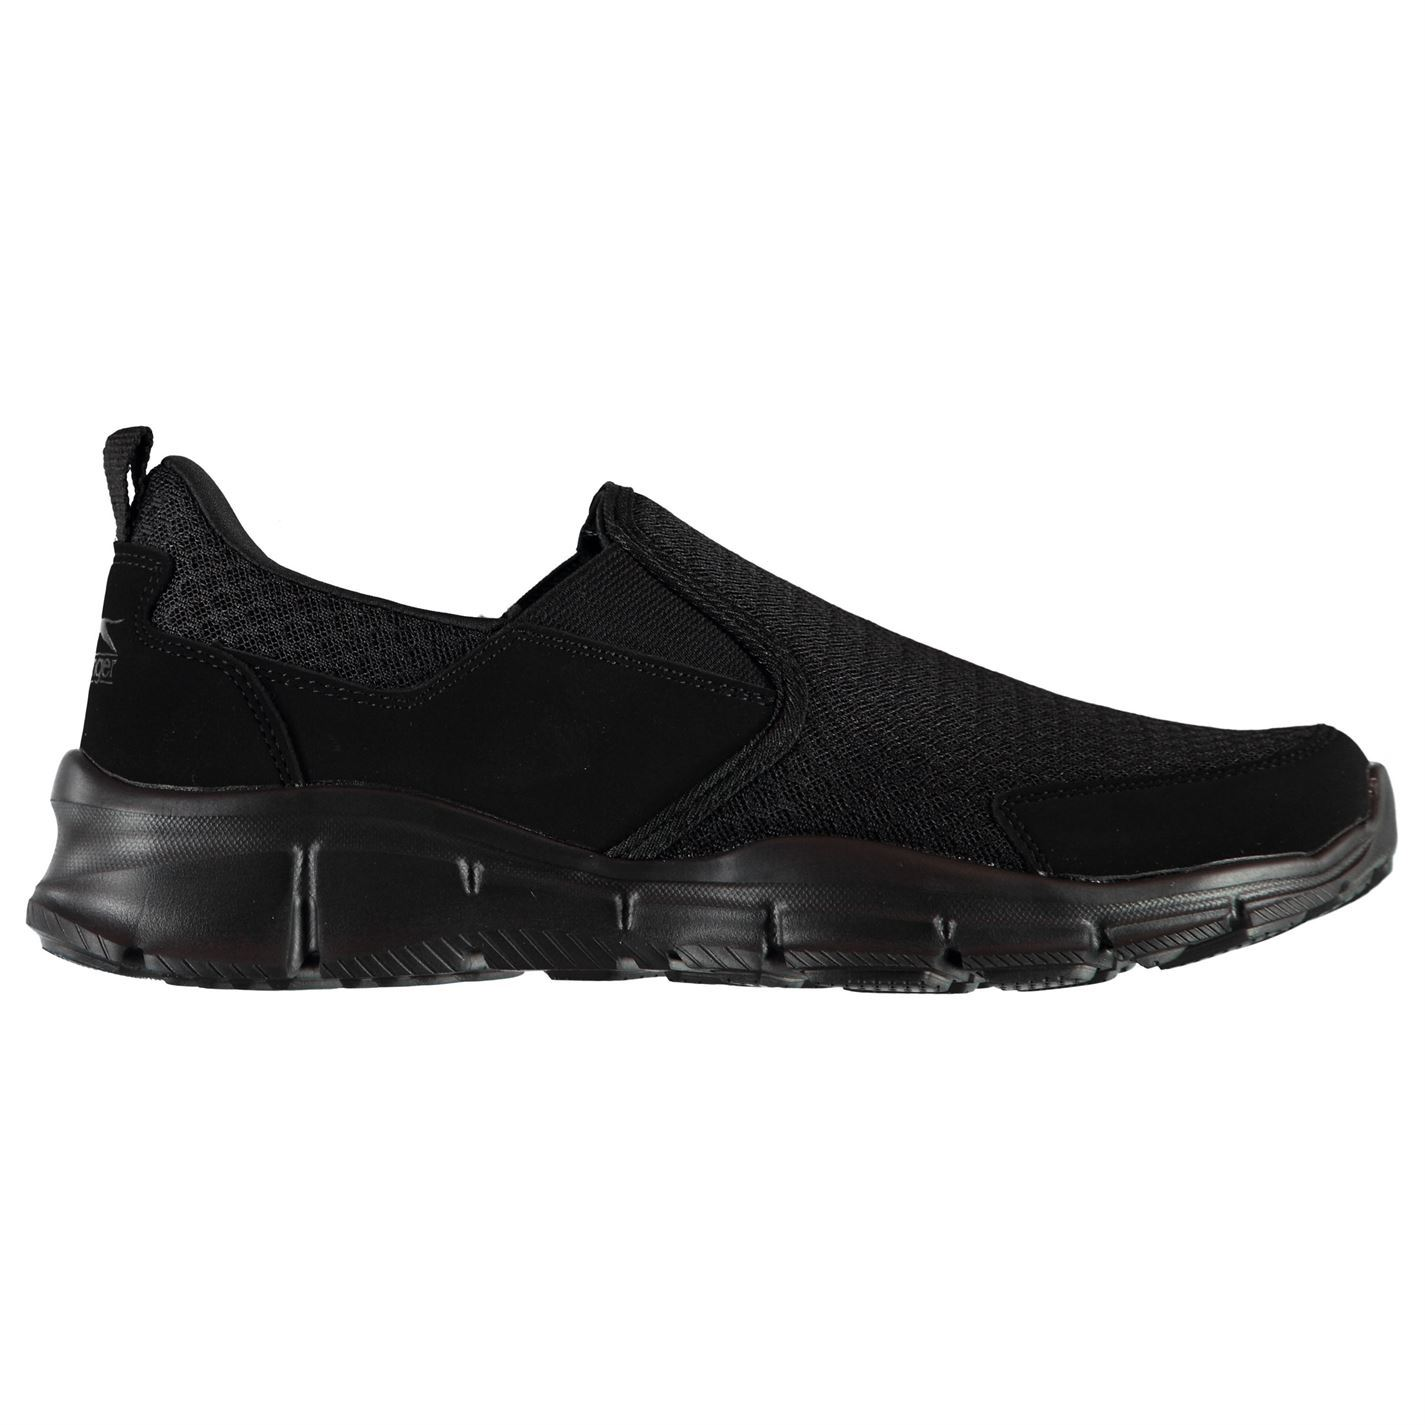 FREE SHIPPING with SKECHERS Elite™ Learn More. Men's Slip-On Shoes.